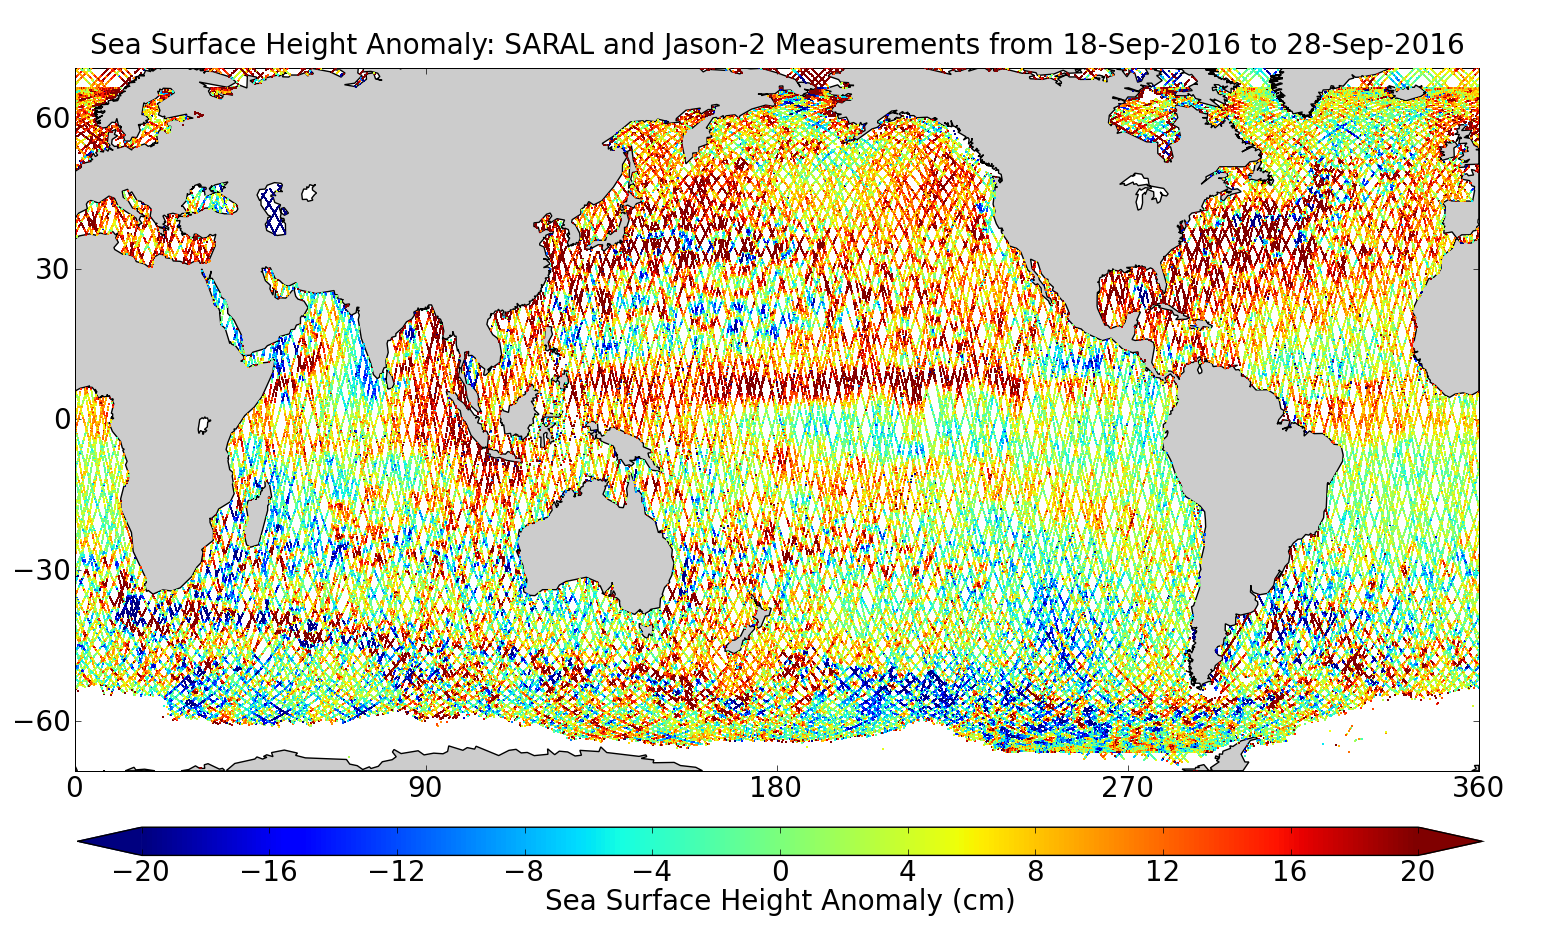 Sea Surface Height Anomaly: SARAL and Jason-2 Measurements from 18-Sep-2016 to 28-Sep-2016